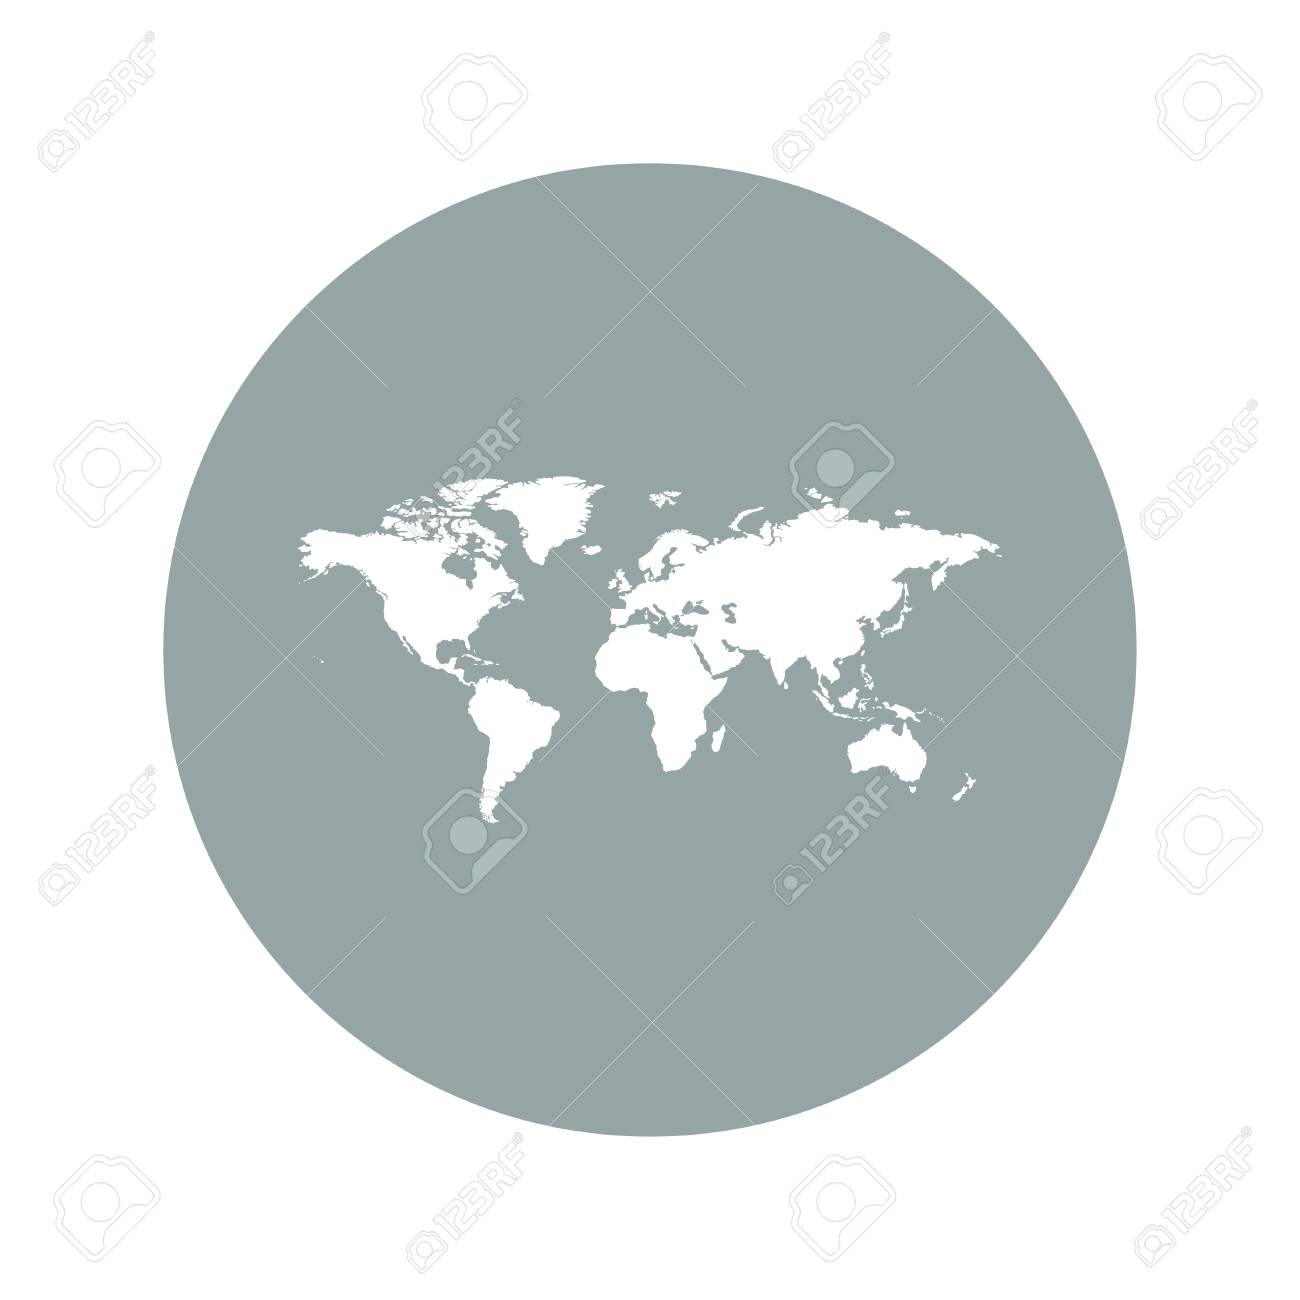 World map illustration flat design style eps 10 royalty free vector world map illustration flat design style eps 10 gumiabroncs Image collections